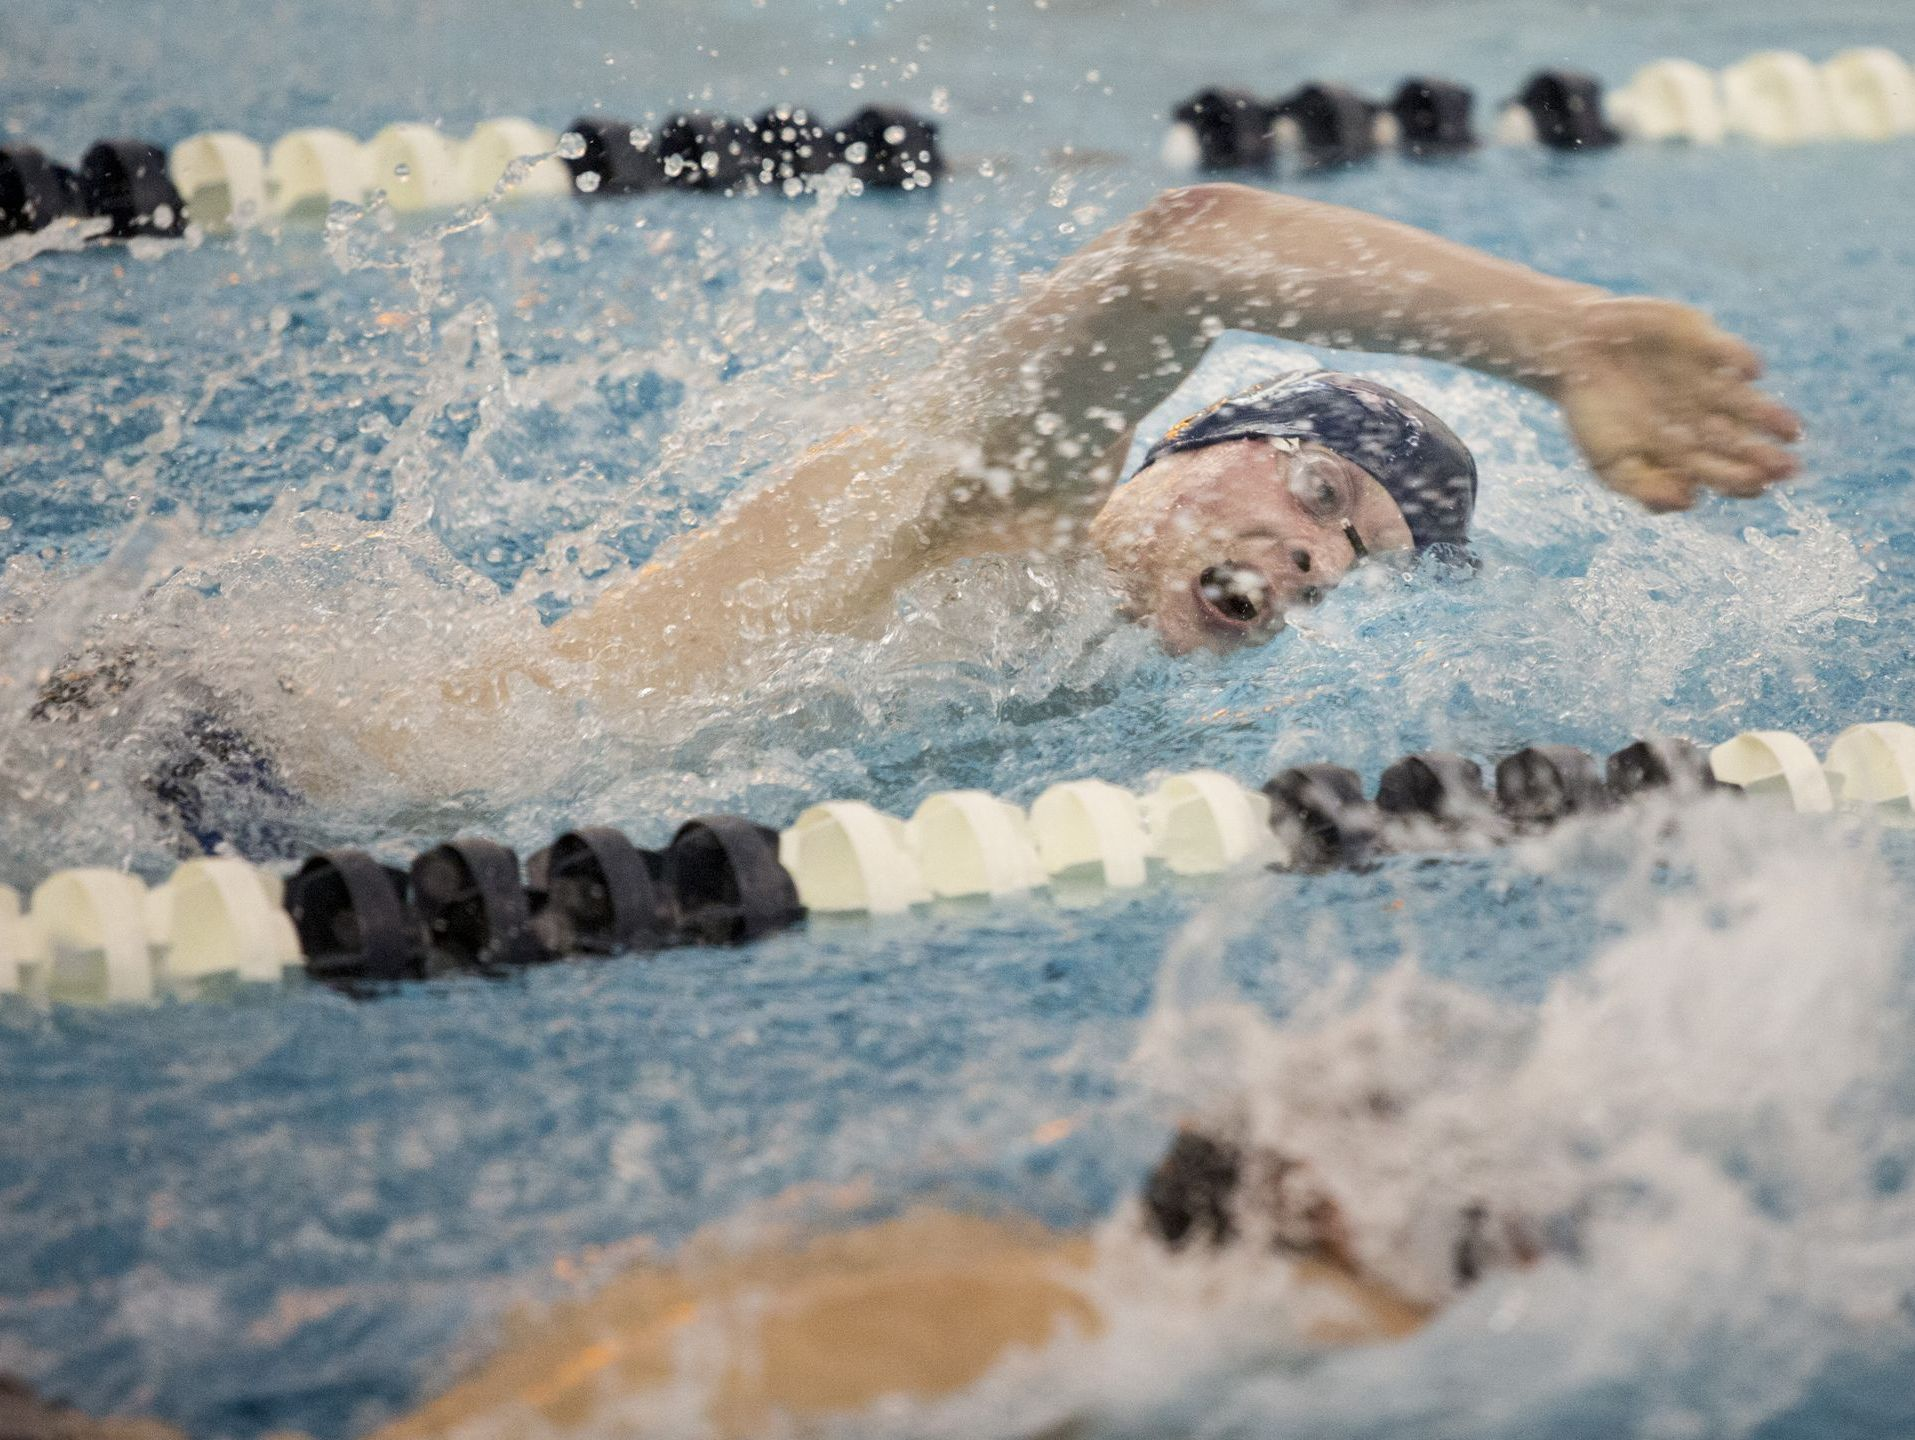 Marysville's Michael Rasnick competes in the 100 yard freestyle during a swim meet Tuesday, Feb. 9, 2016 at Marysville High School.